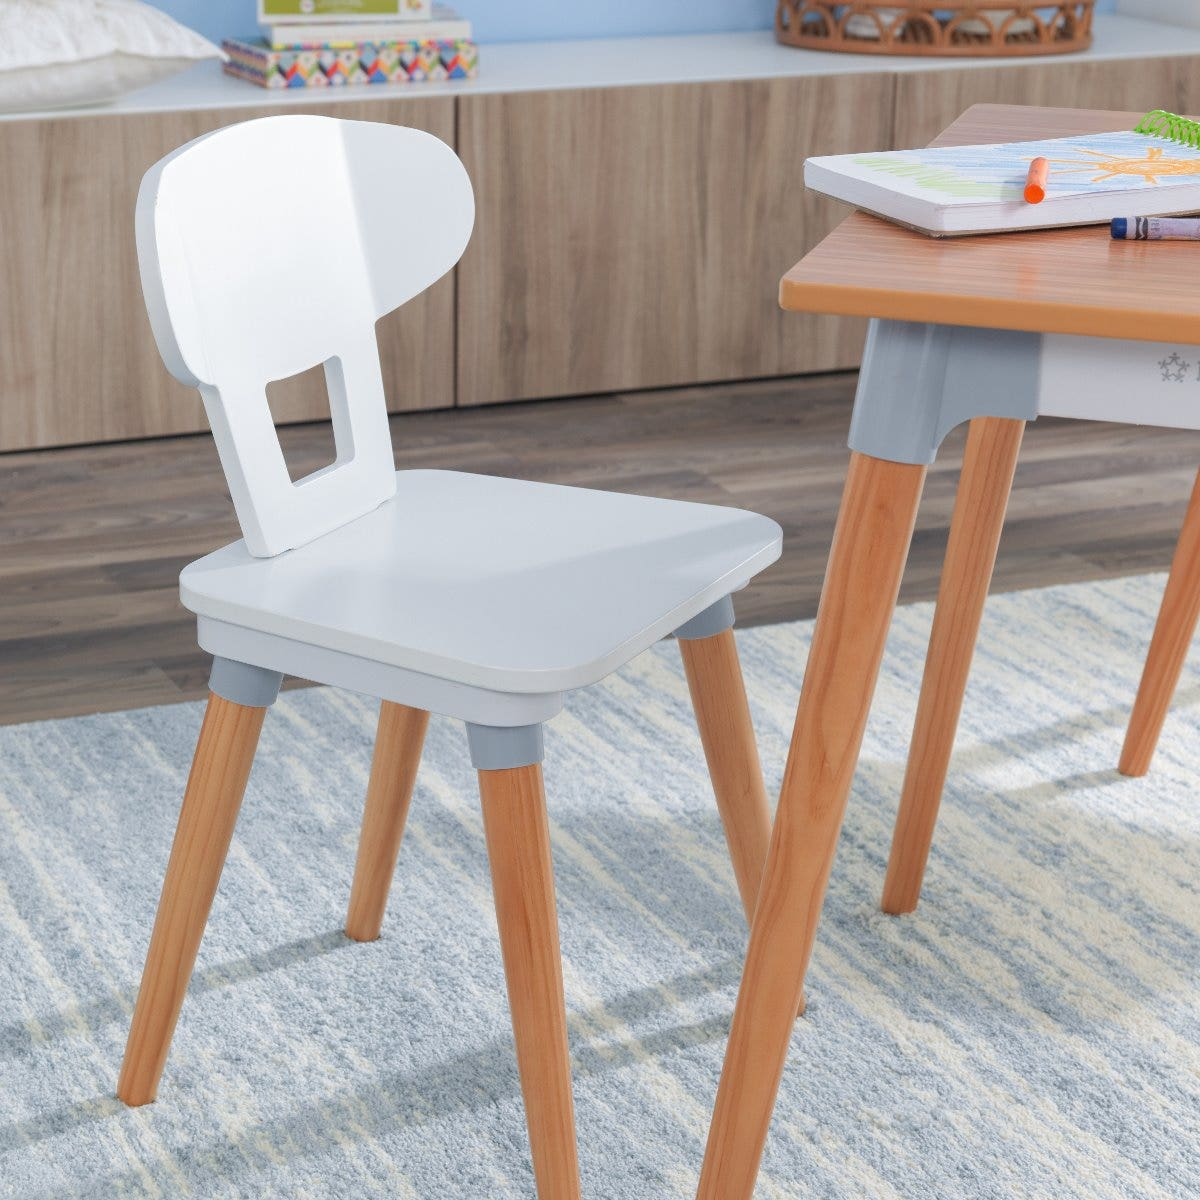 Includes table and four chairs